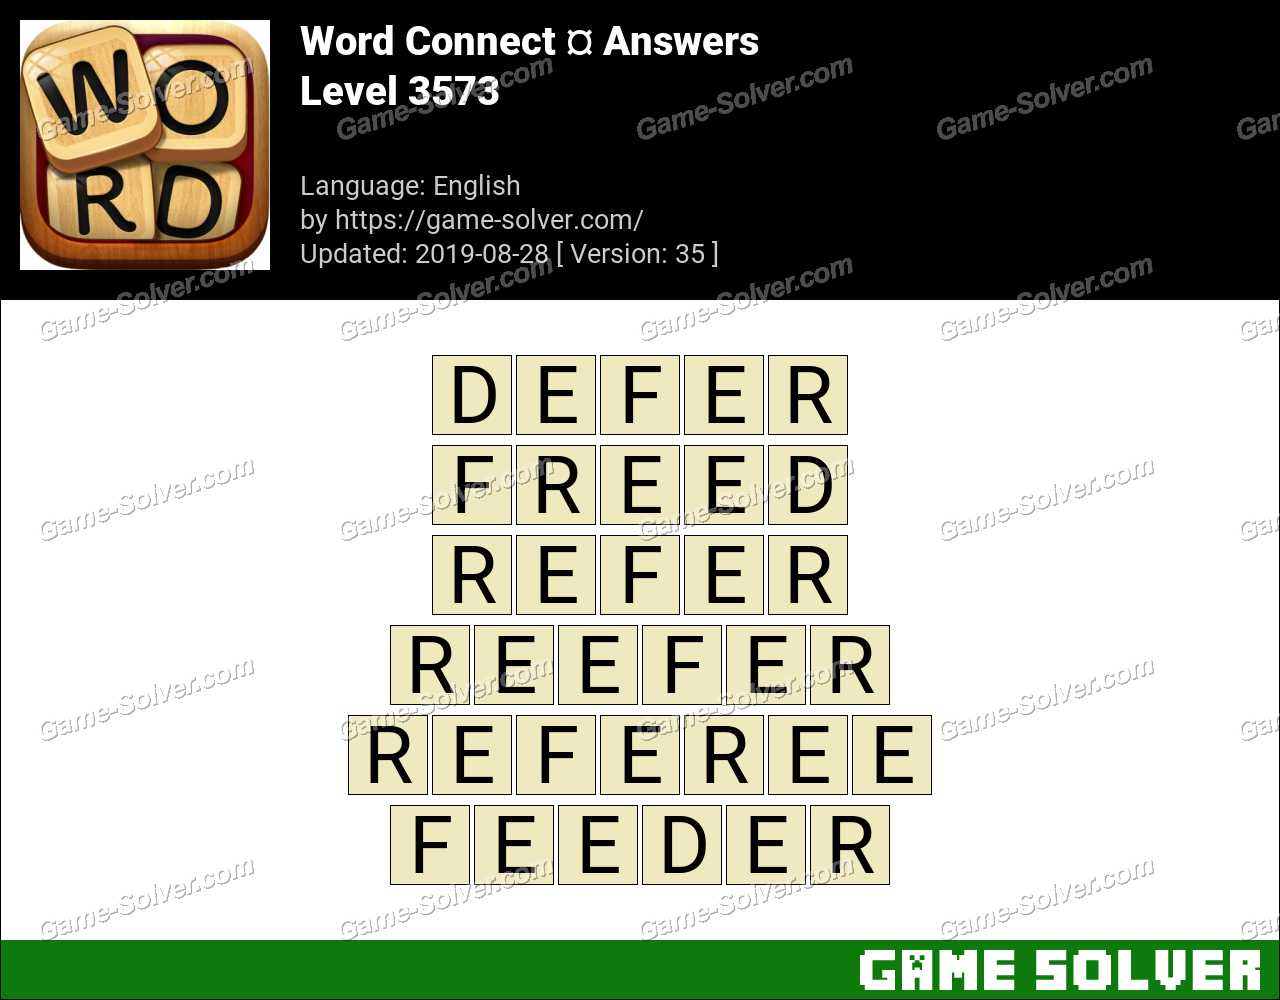 Word Connect Level 3573 Answers